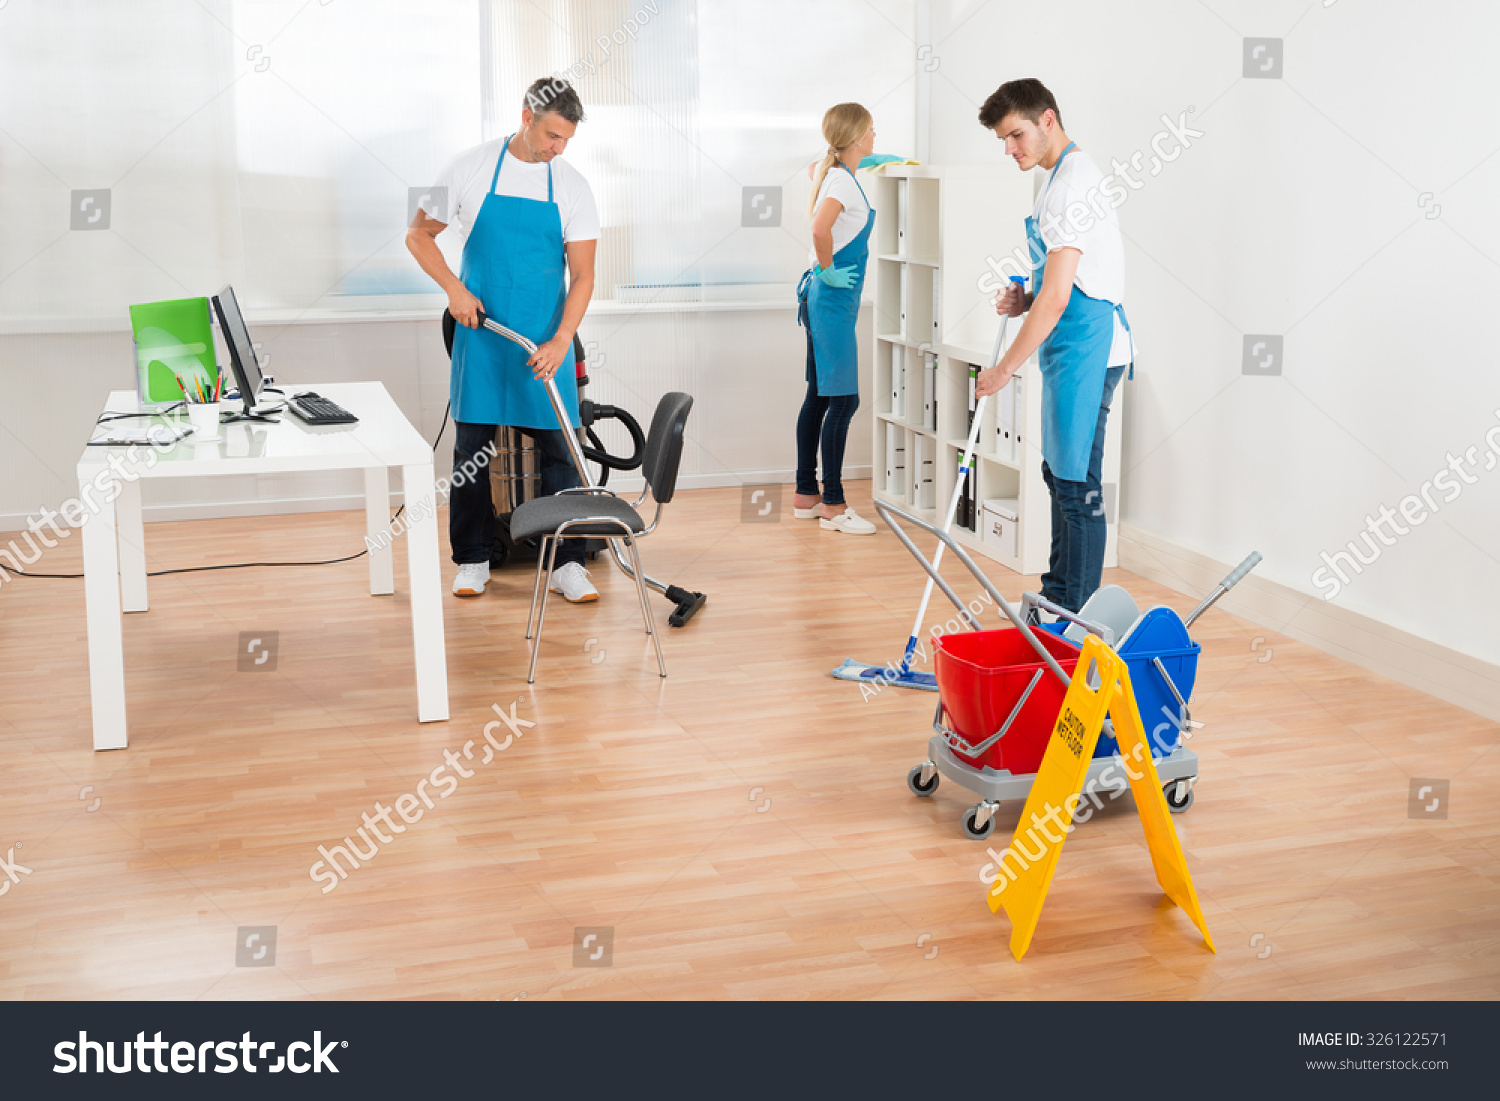 Blue apron office - Group Of Three Janitors In Blue Apron Cleaning Office 326122571